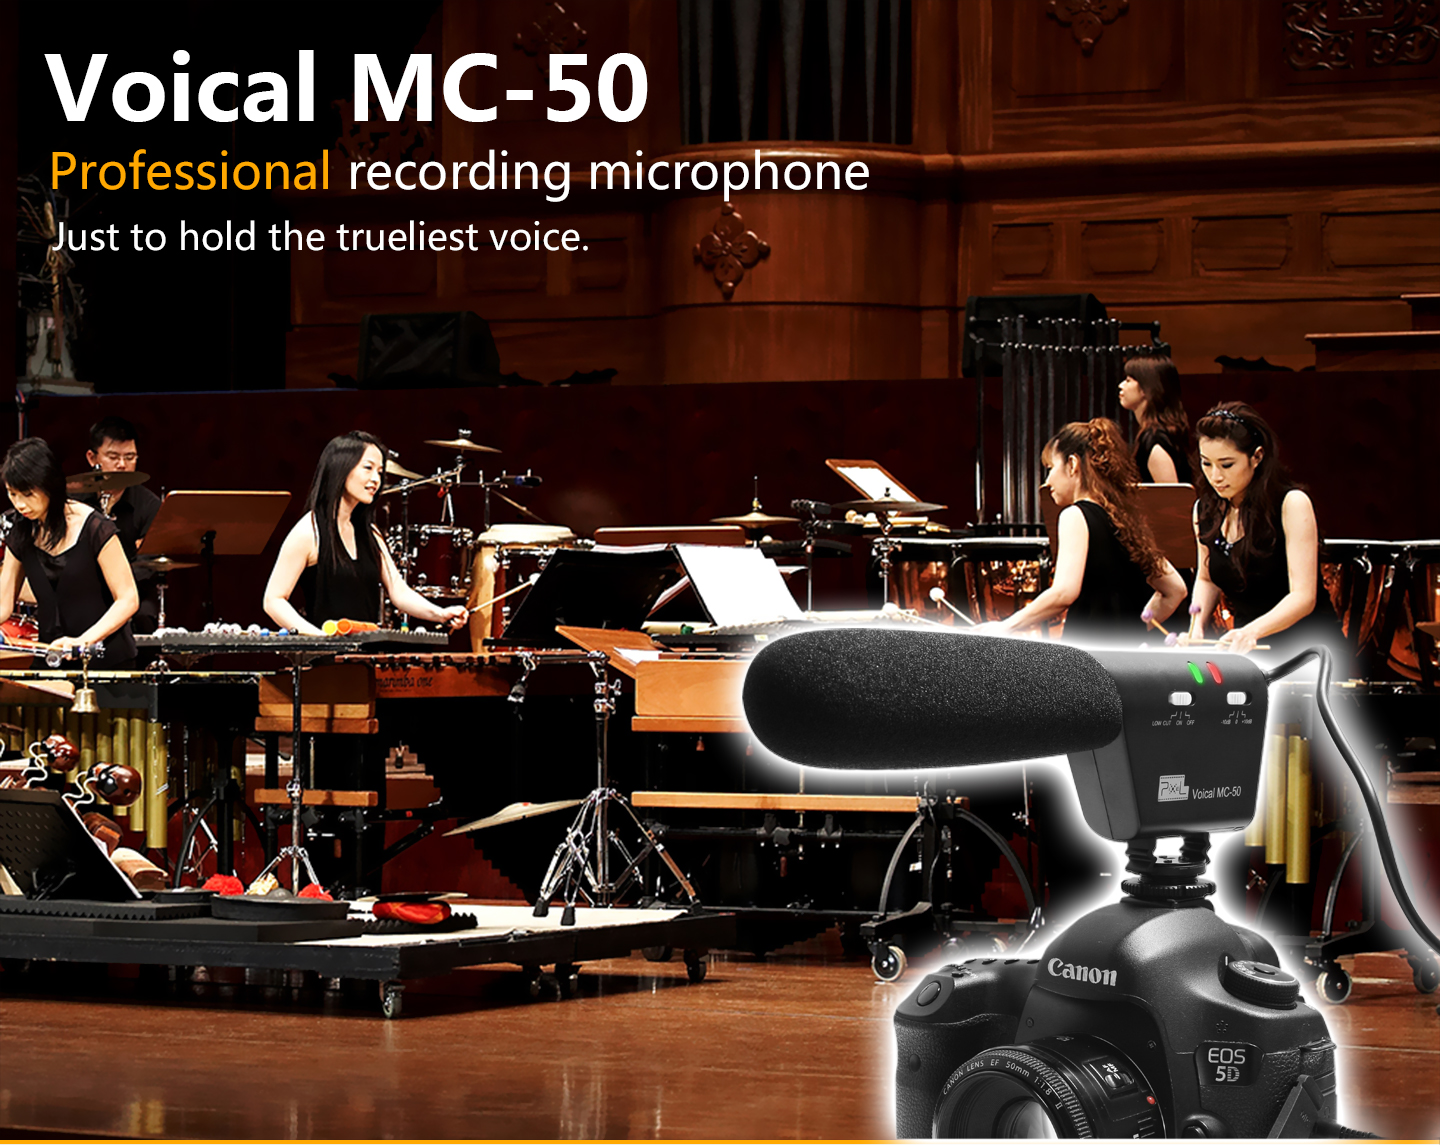 Voical MC-50 Professional recording microphone